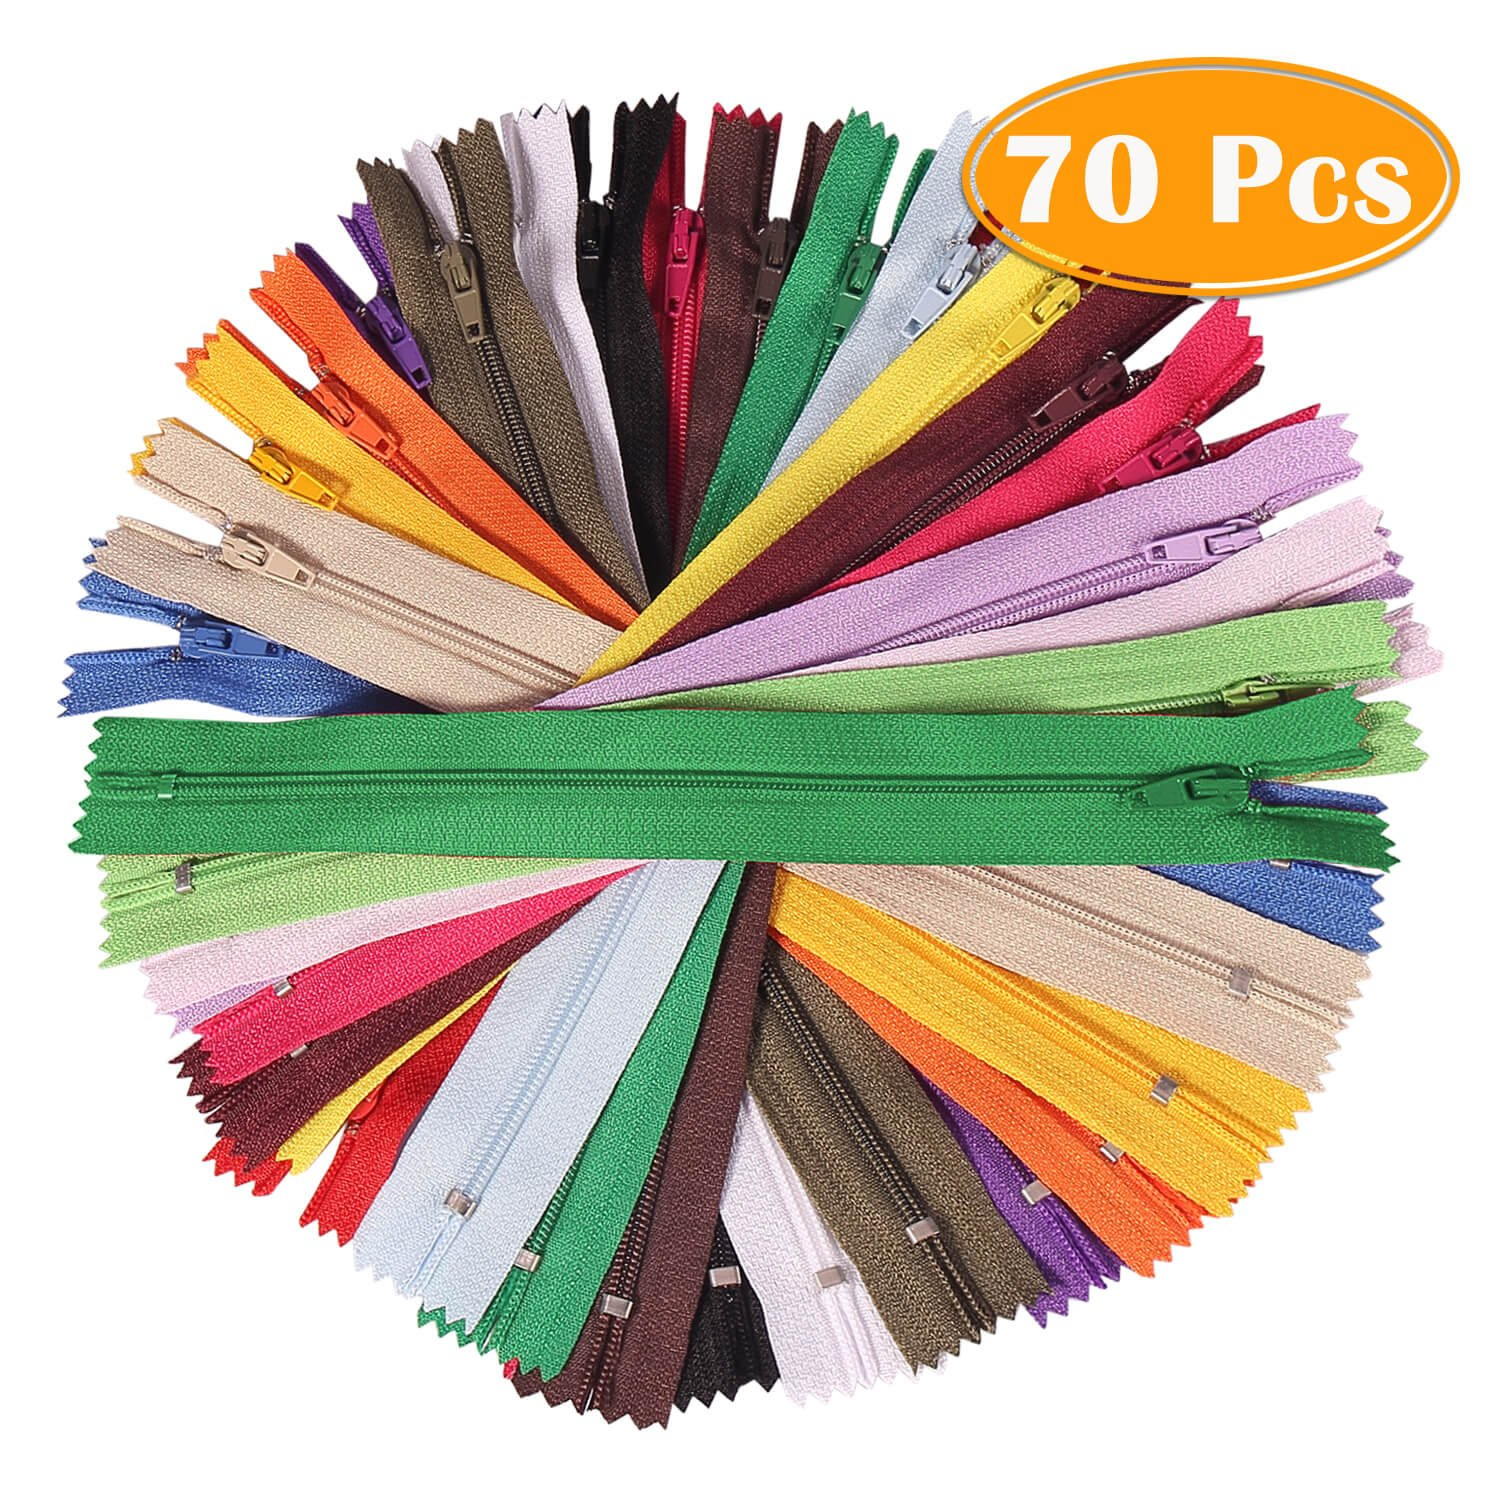 Paxcoo 70Pcs 12 inch Assorted Zippers Bulk for Sewing Craft 4337006513